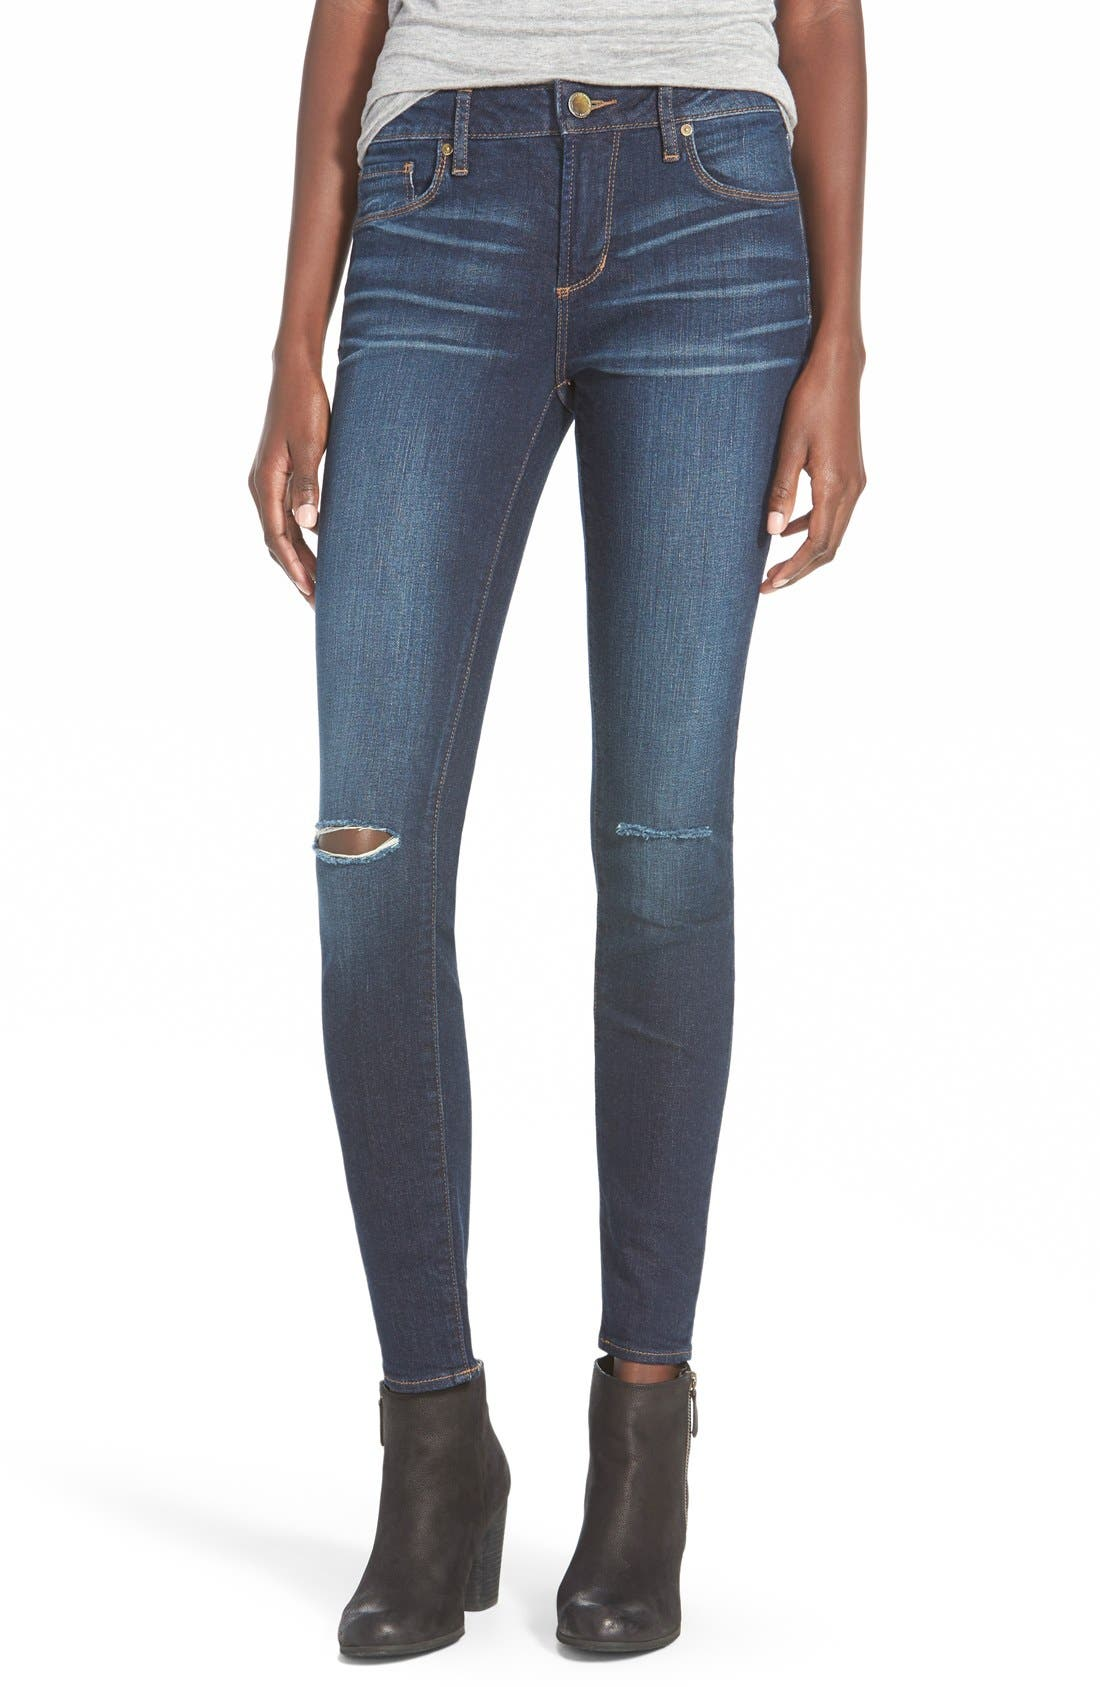 Alternate Image 1 Selected - Articles of Society Red Label 'Soho' Distressed Skinny Jeans (Pure)